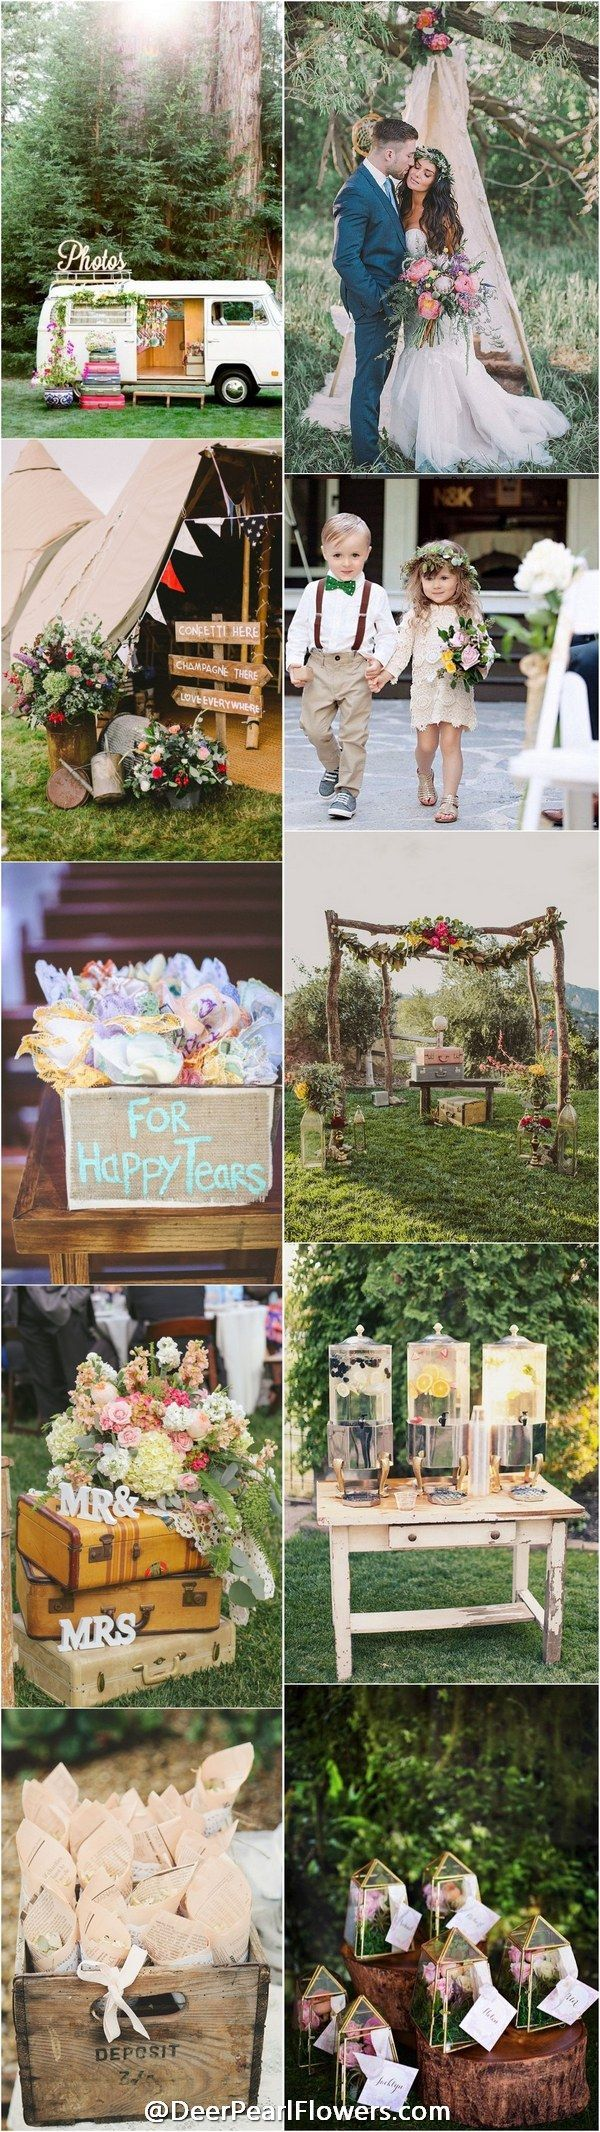 Vintage bohemian wedding theme ideas / http://www.deerpearlflowers.com/vintage-bohemian-wedding-ideas/